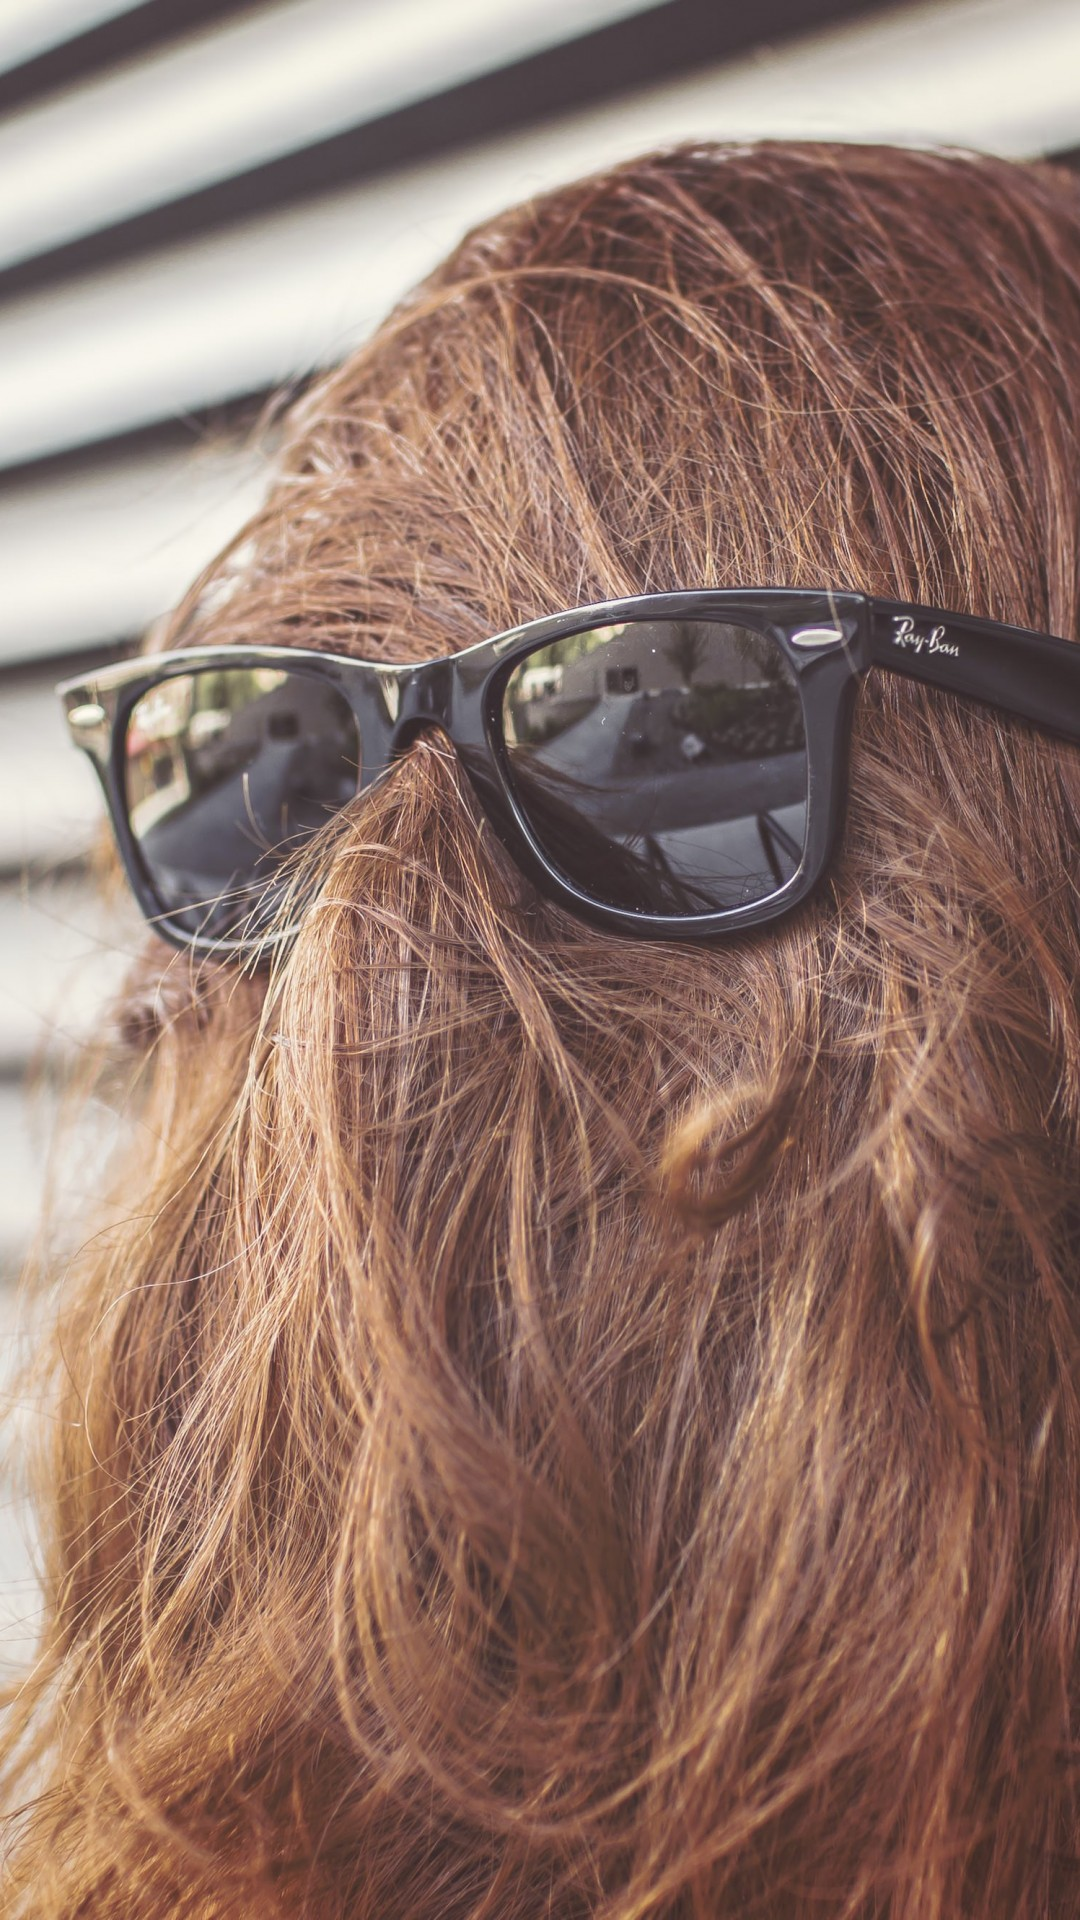 Chewbacca Girl Wallpaper for SONY Xperia Z3